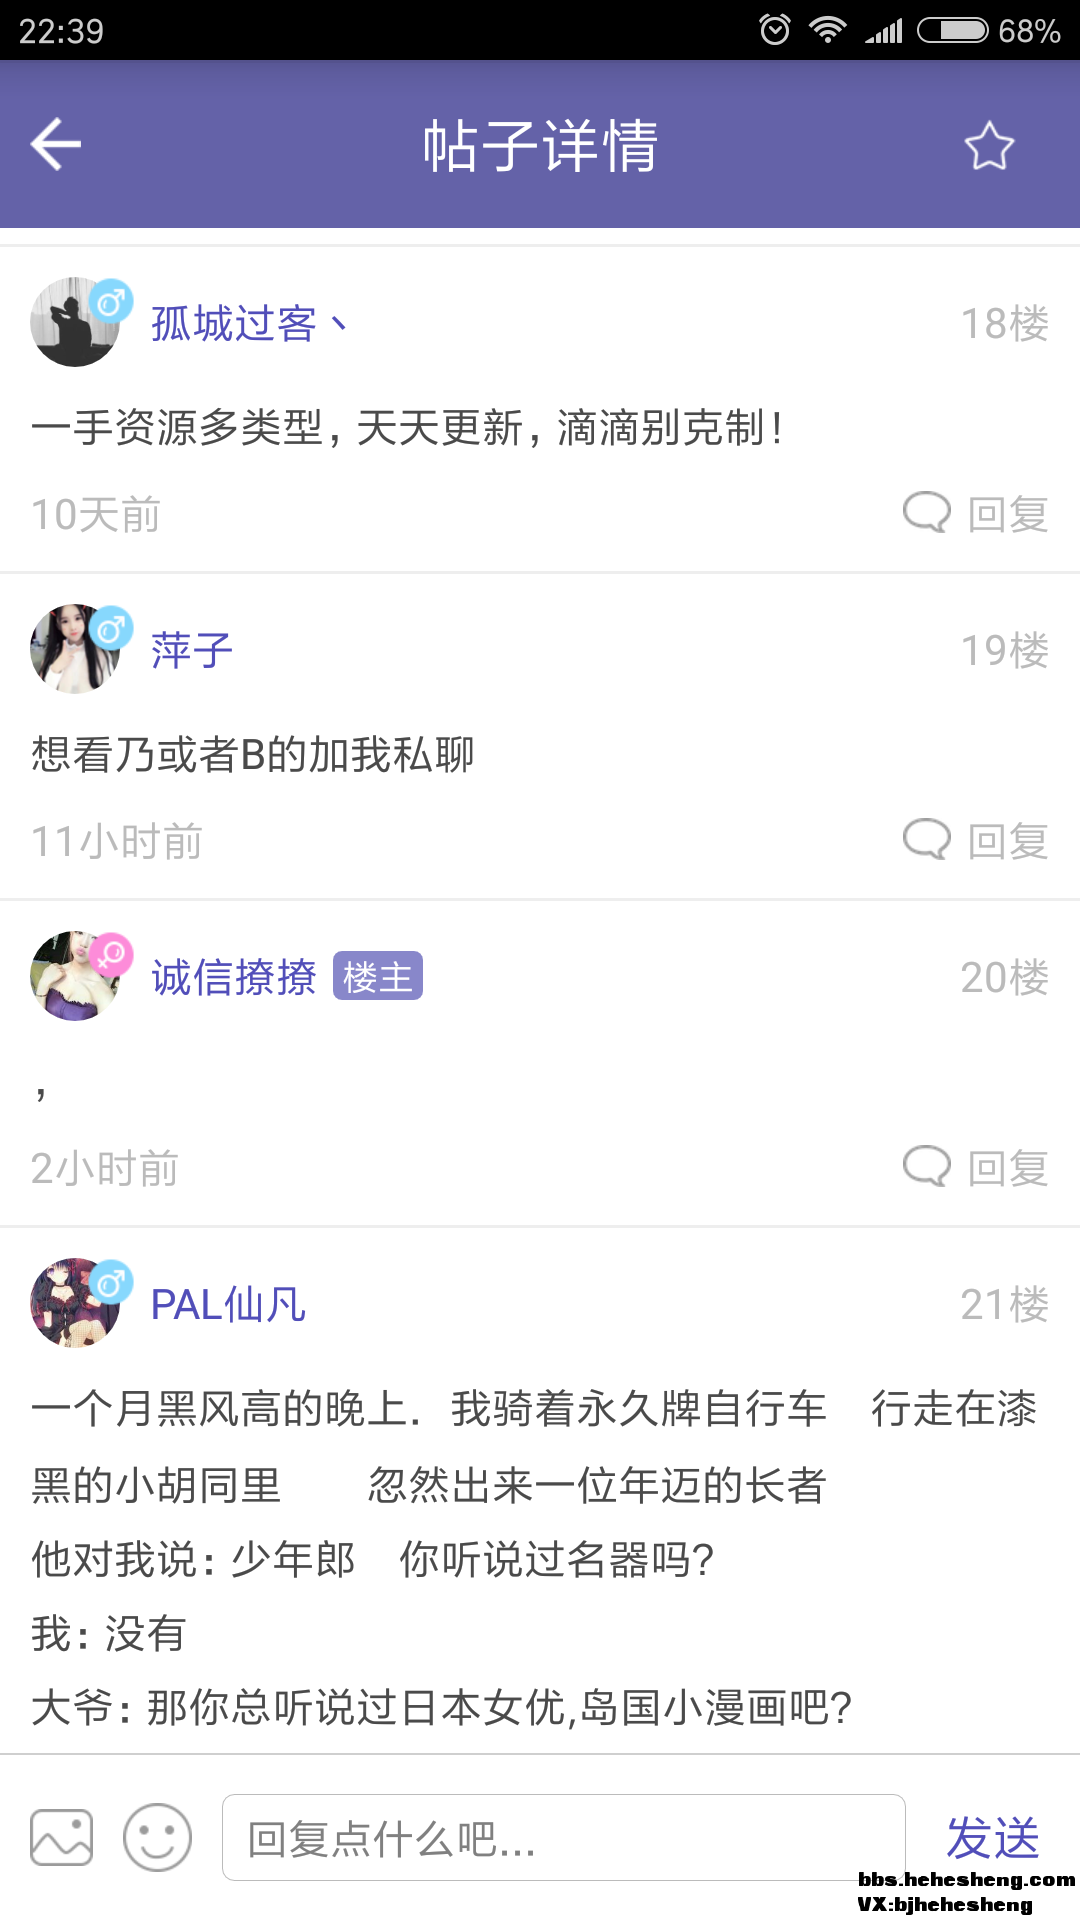 Screenshot_2018-01-19-22-39-11-518_com.mengxia.lo.png